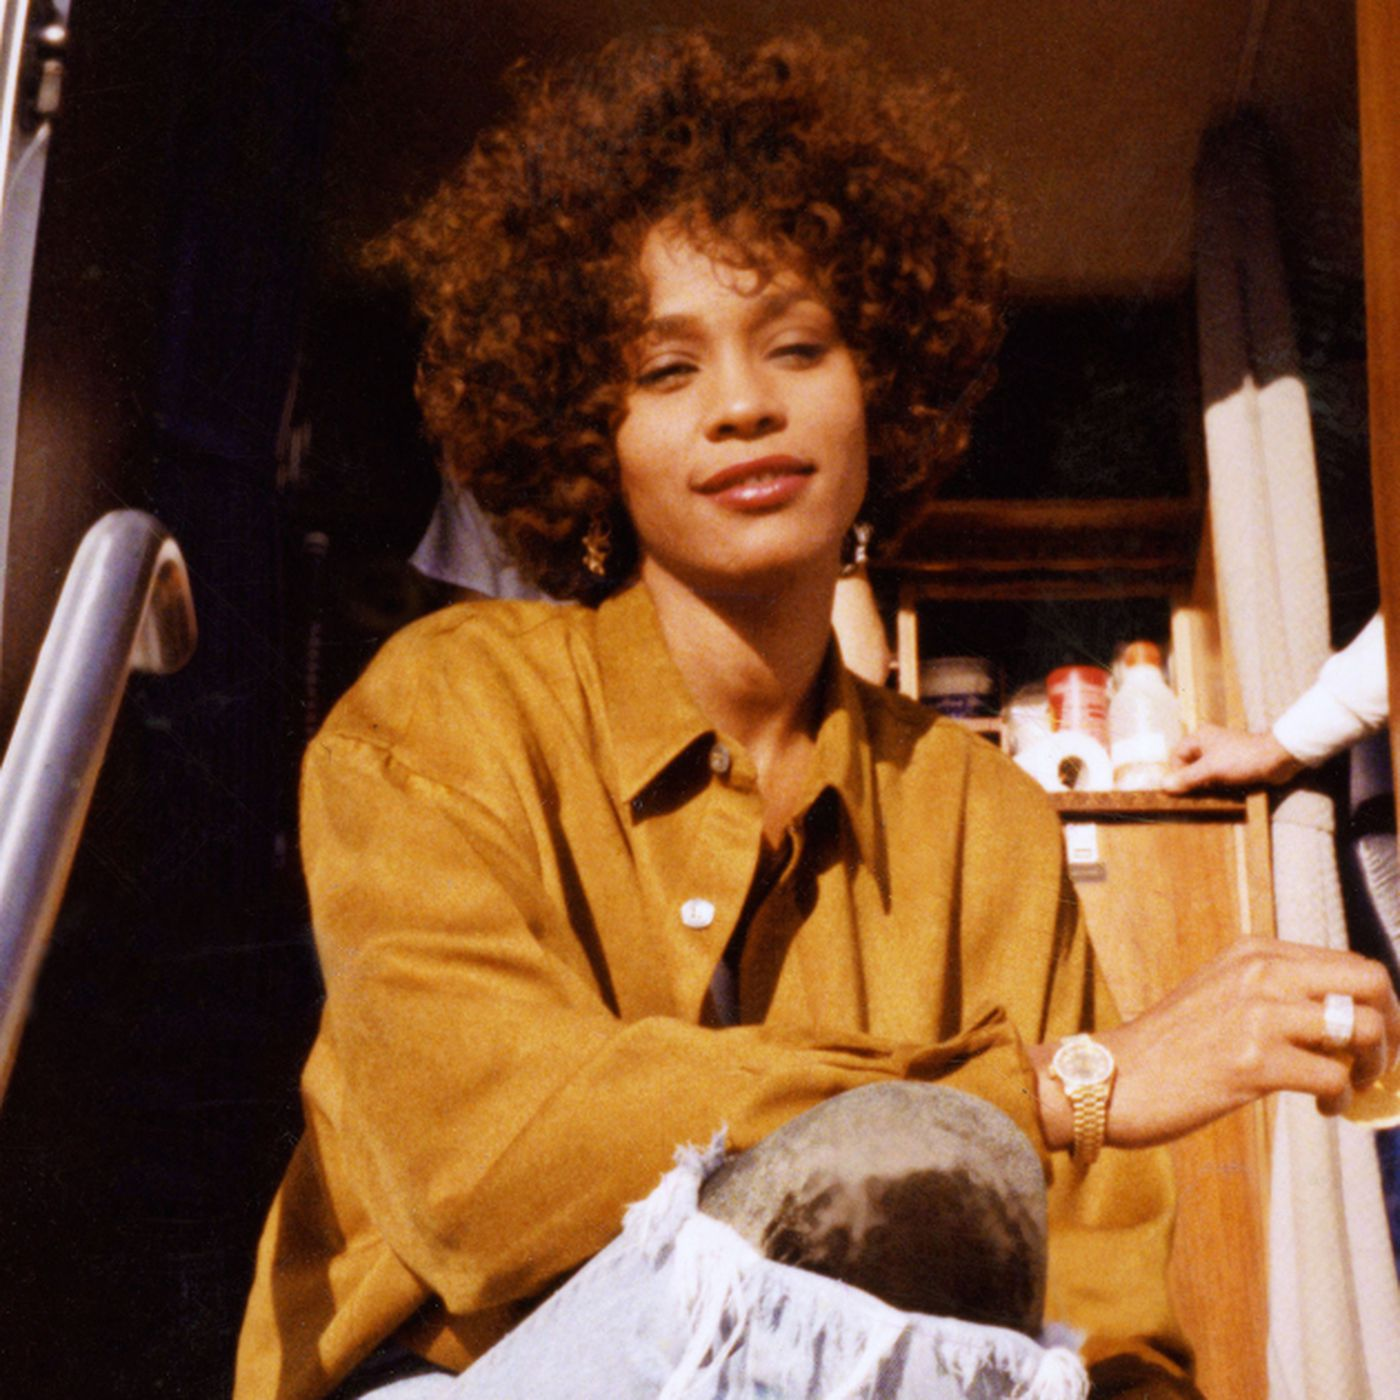 Candid Whitney Houston film reminds us how exciting the rise, how sad the  fall - Chicago Sun-Times